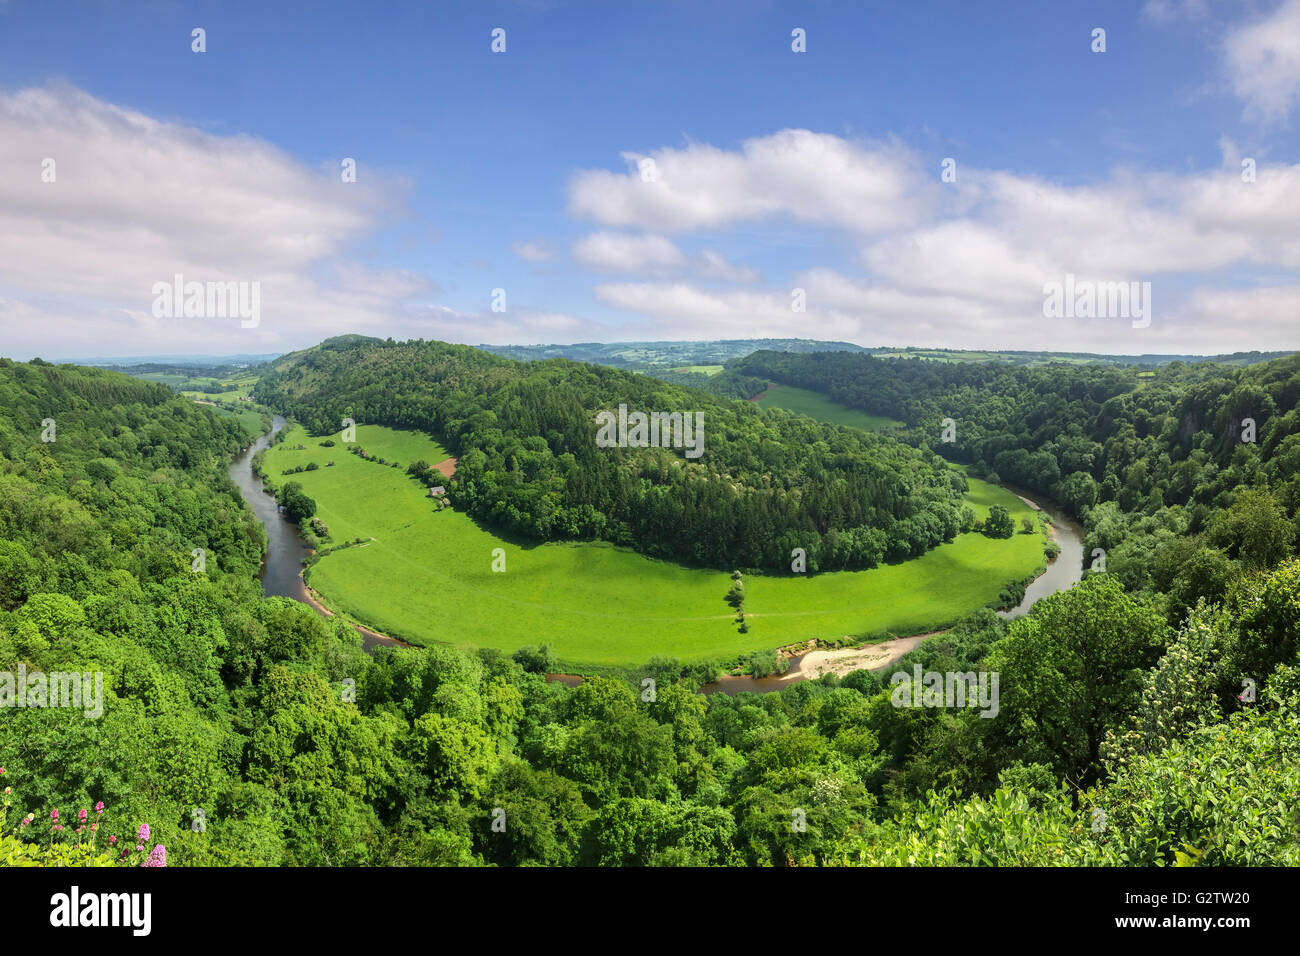 The Wye Valley from Symonds Yat Rock, Gloucestershire, England, UK, in early summer. - Stock Image